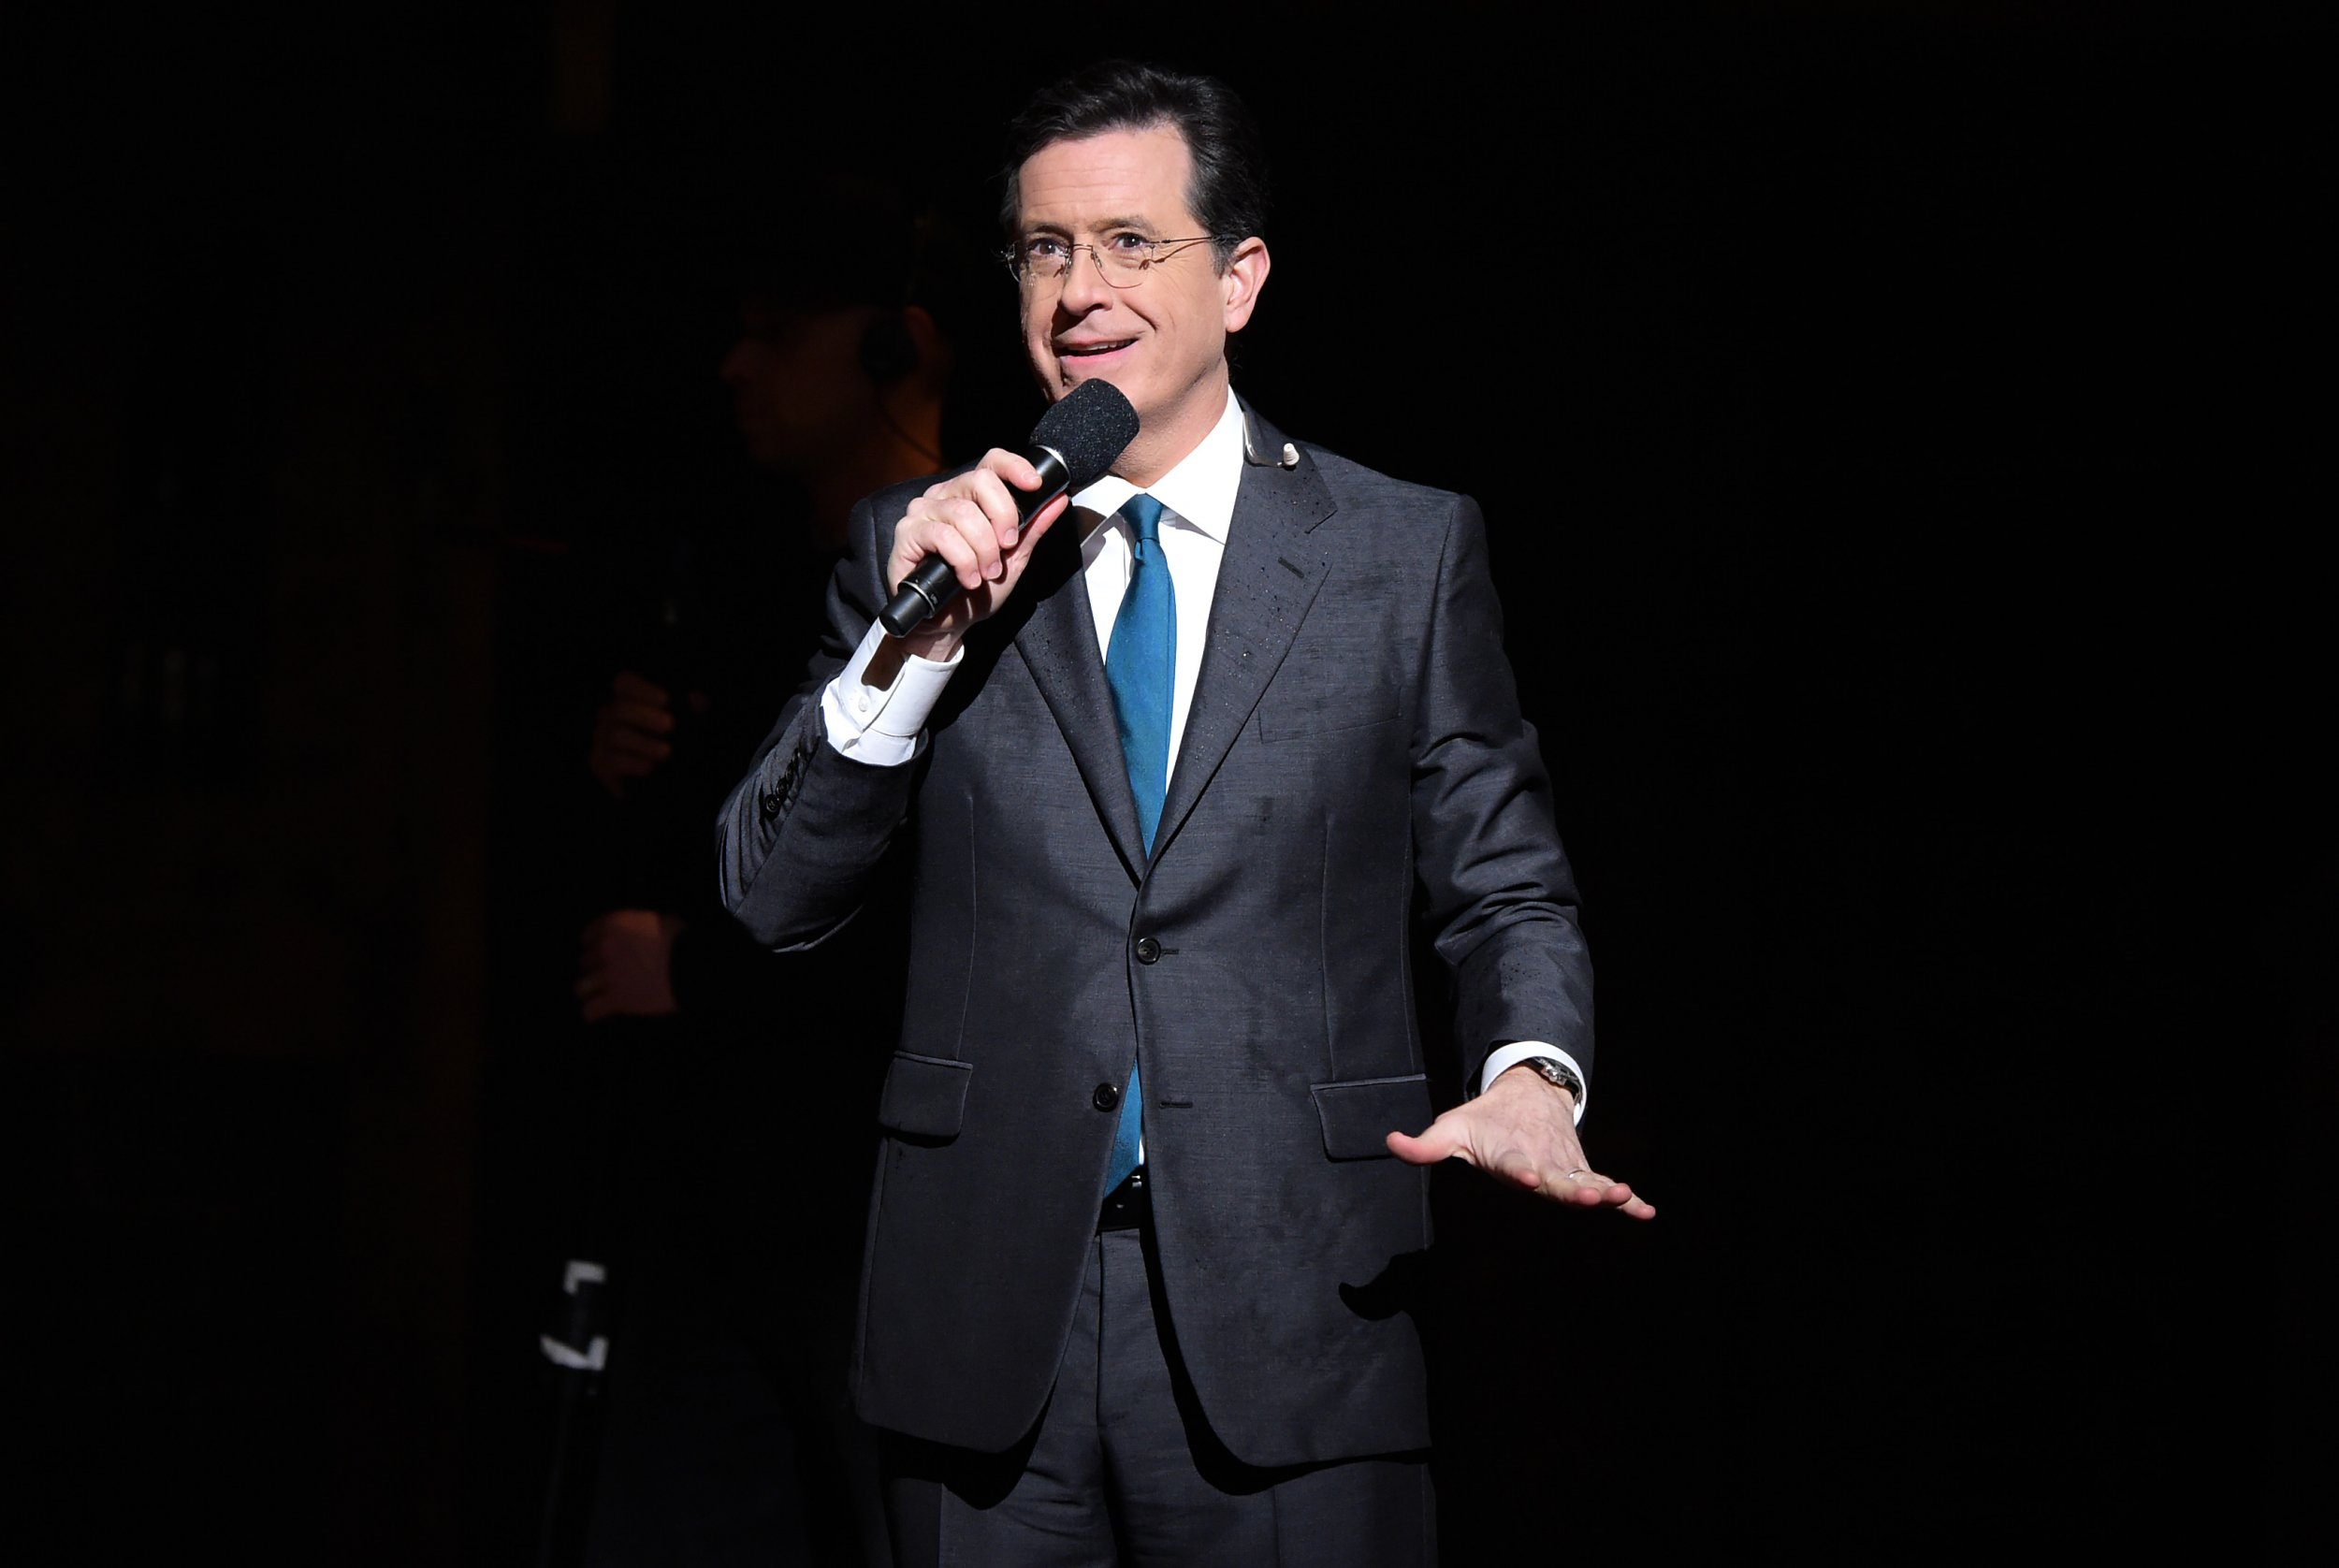 Stephen Colbert at the Grammys